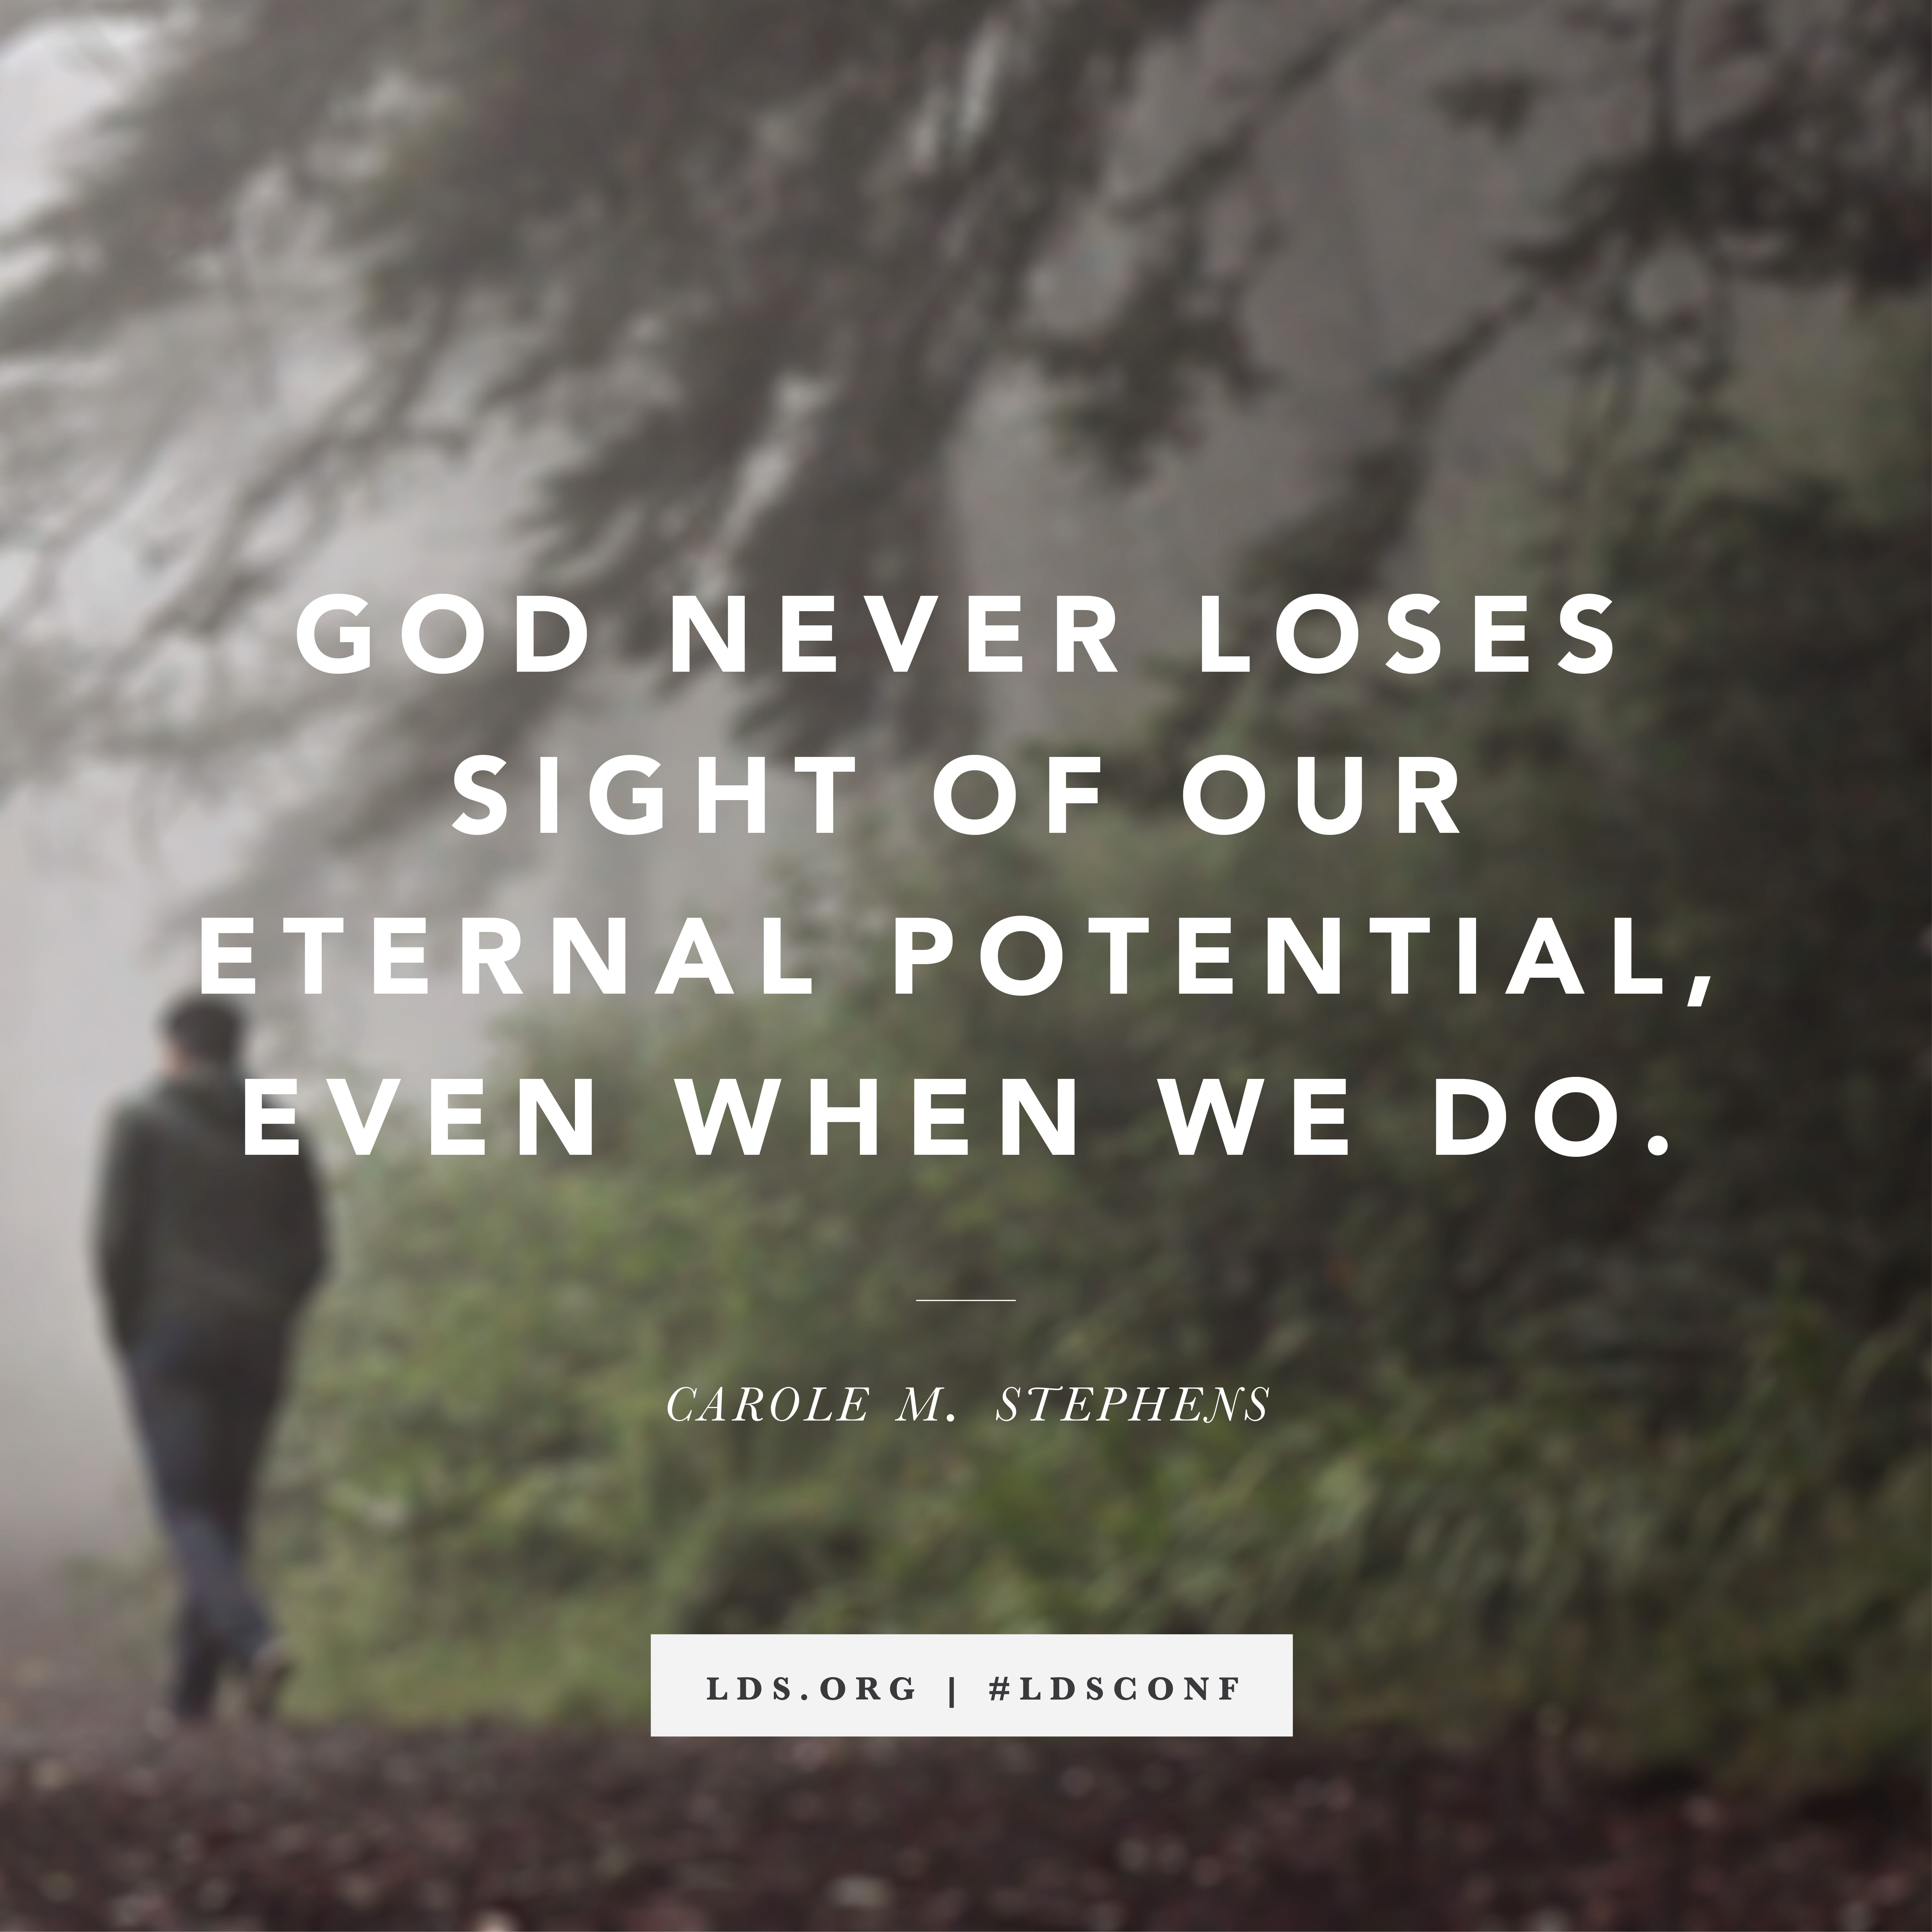 """""""God never loses sight of our eternal potential, even when we do."""" —Carole M. Stephens, """"If Ye Love Me, Keep My Commandments"""""""